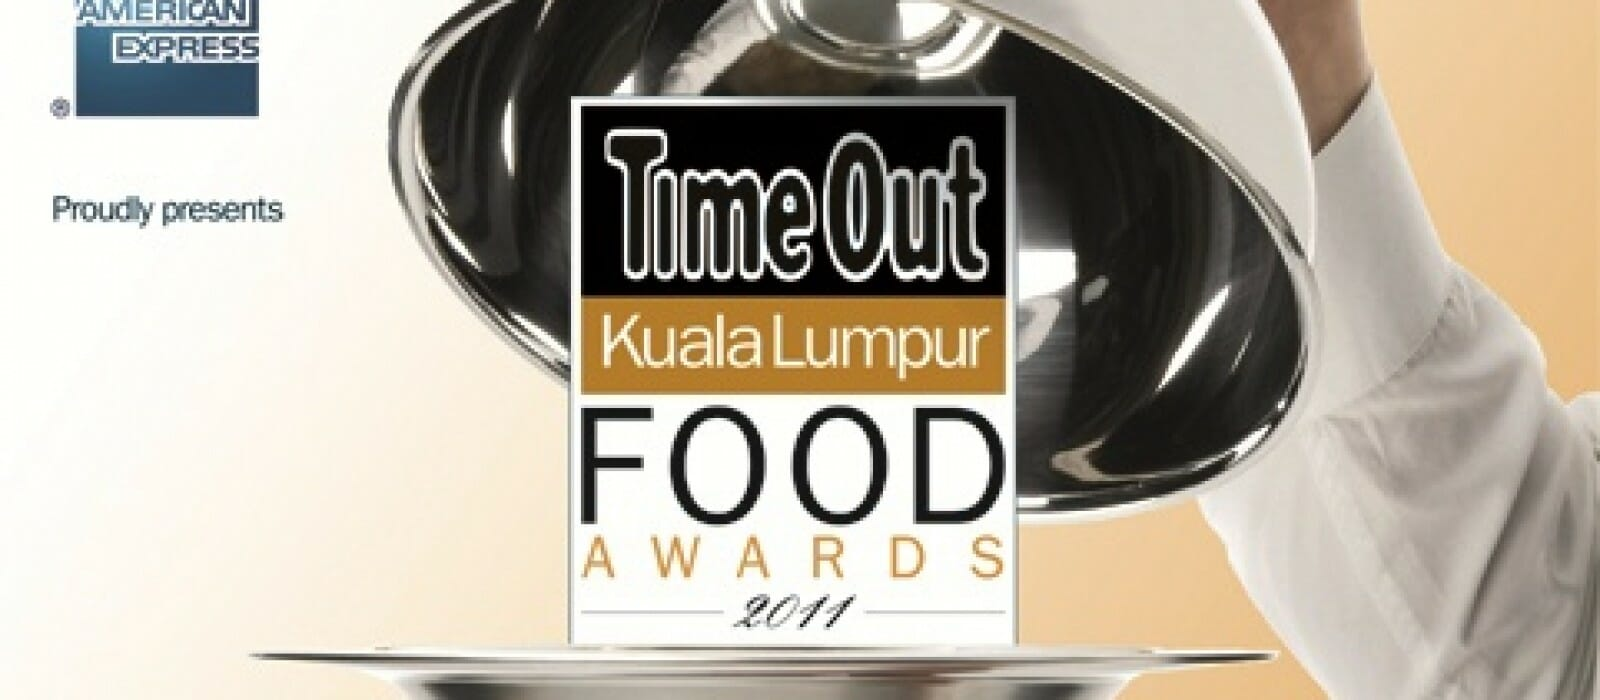 TOKLfoodawards2011_slideshow